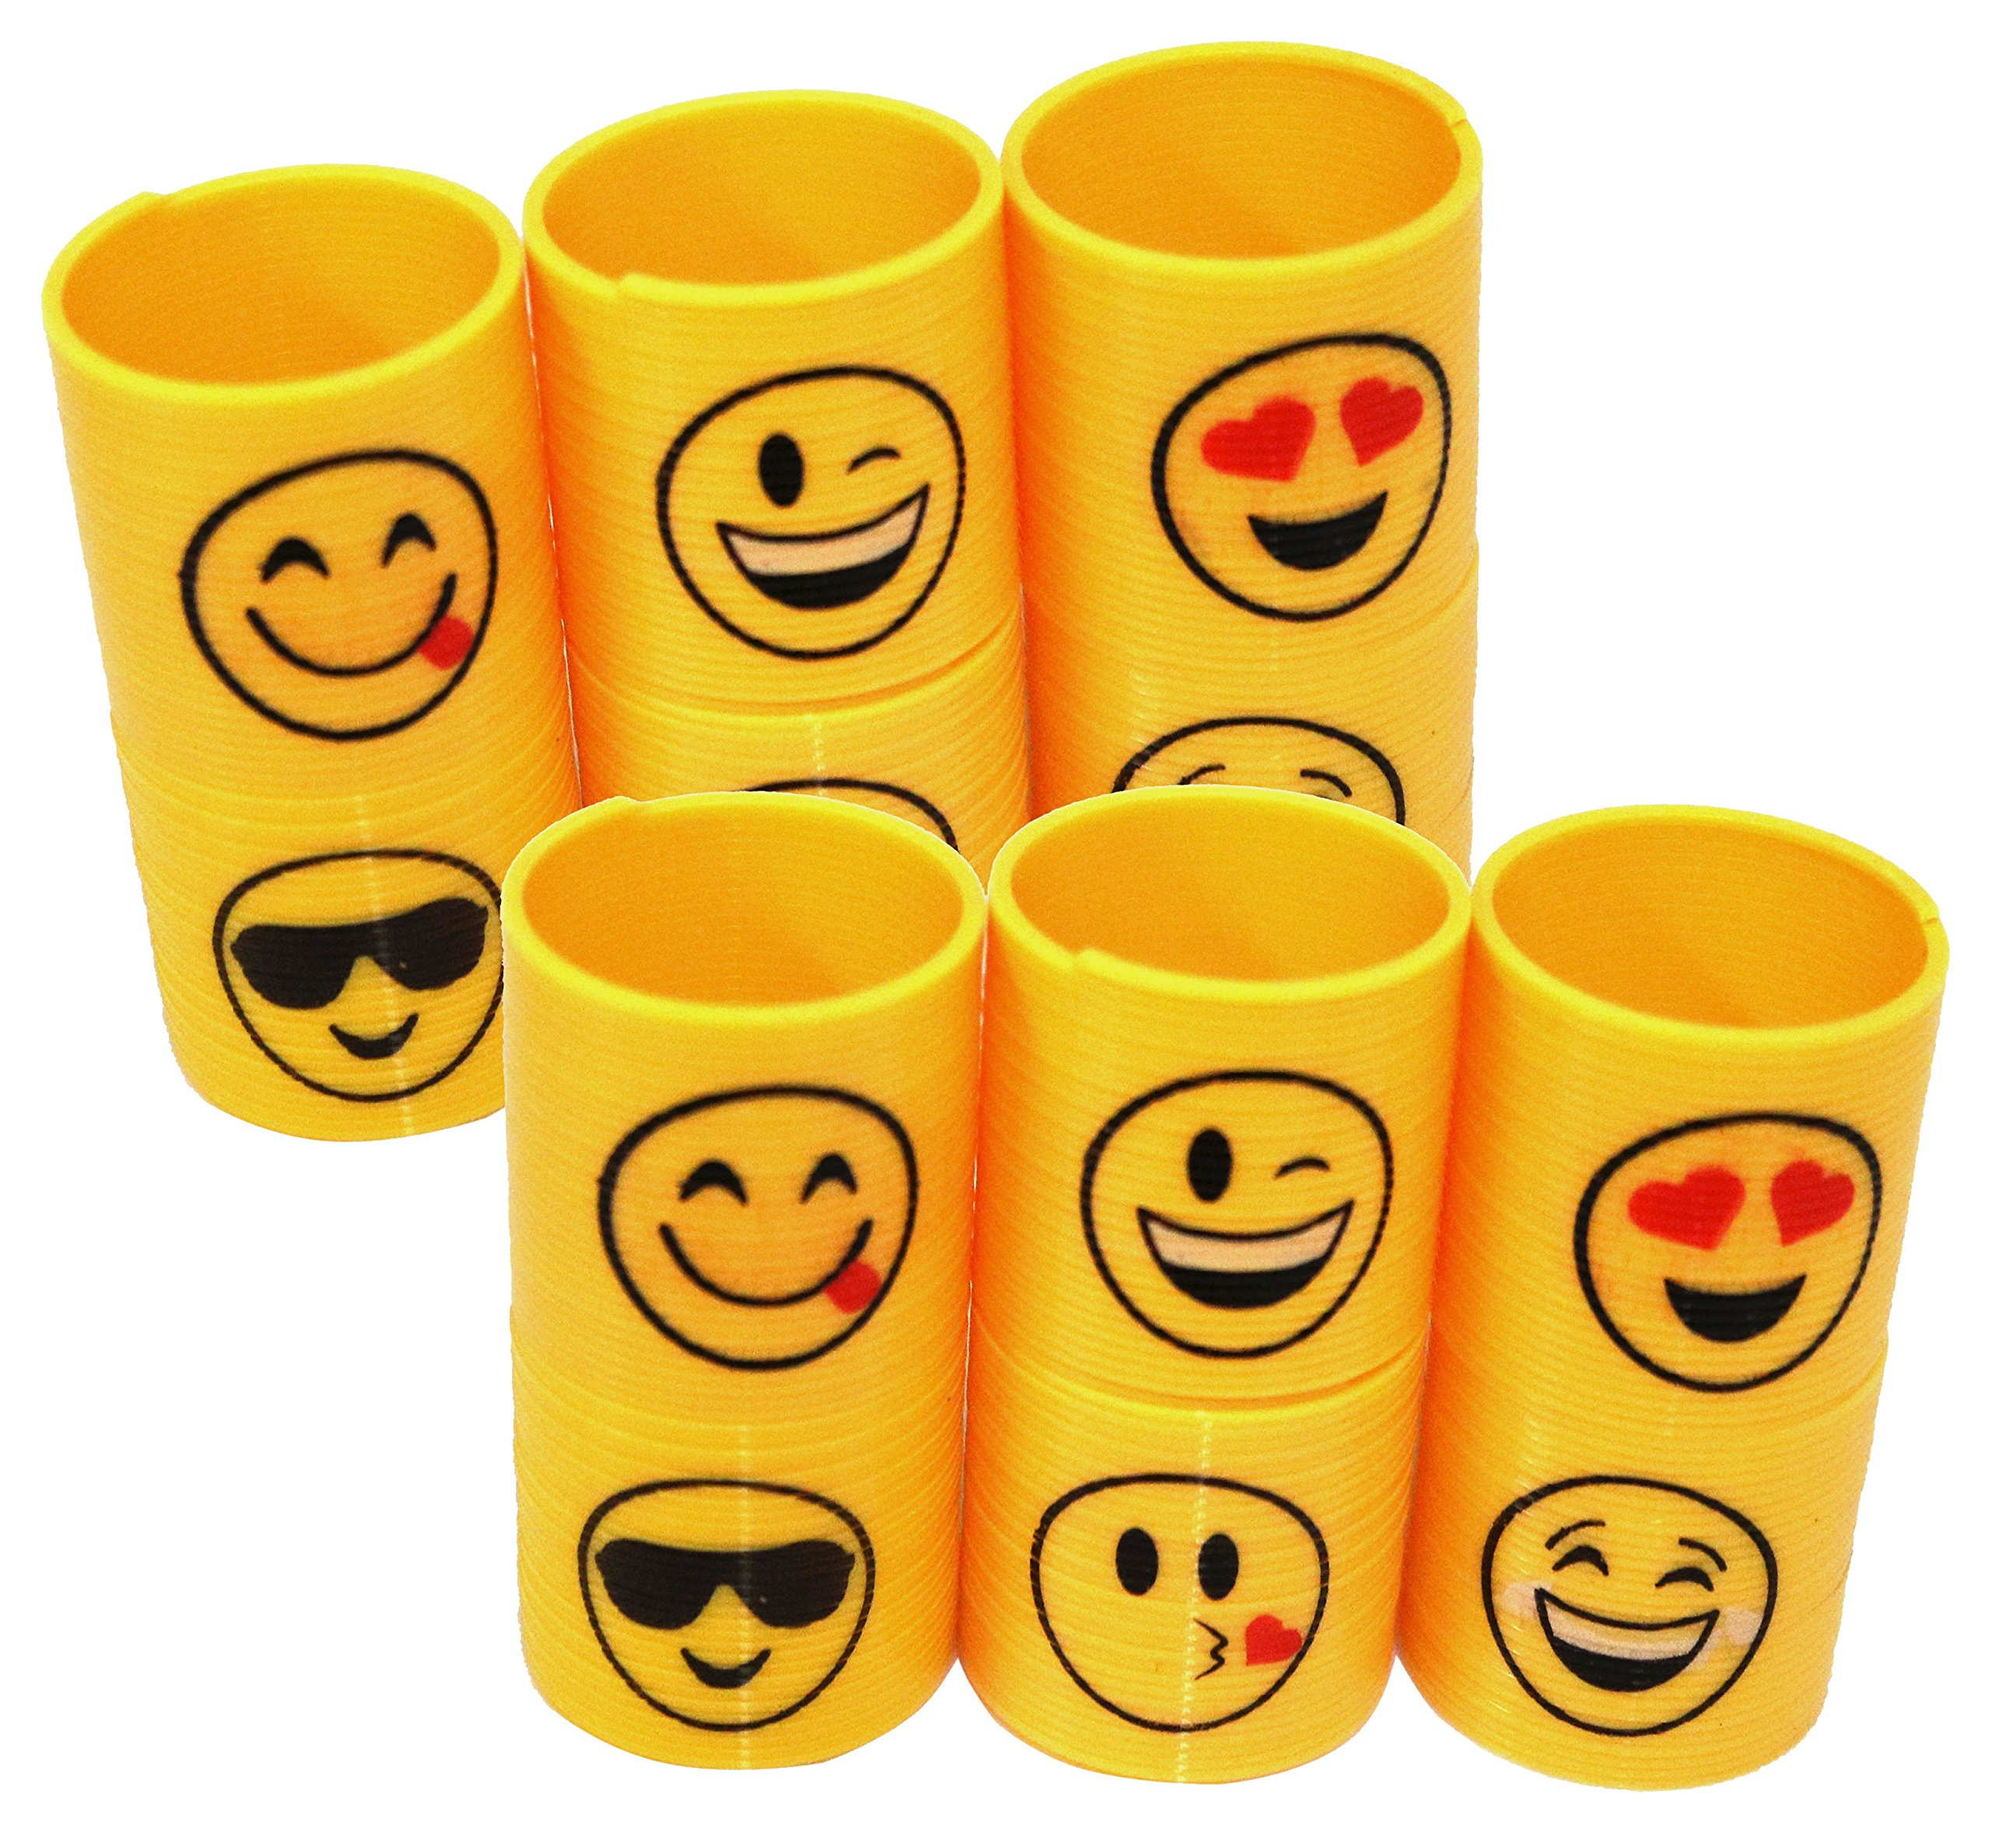 Emoji Coil Springs Fun Slinky Great Party Favor And School Classroom Reward 24 Pack Of Emoji Plastic Springs